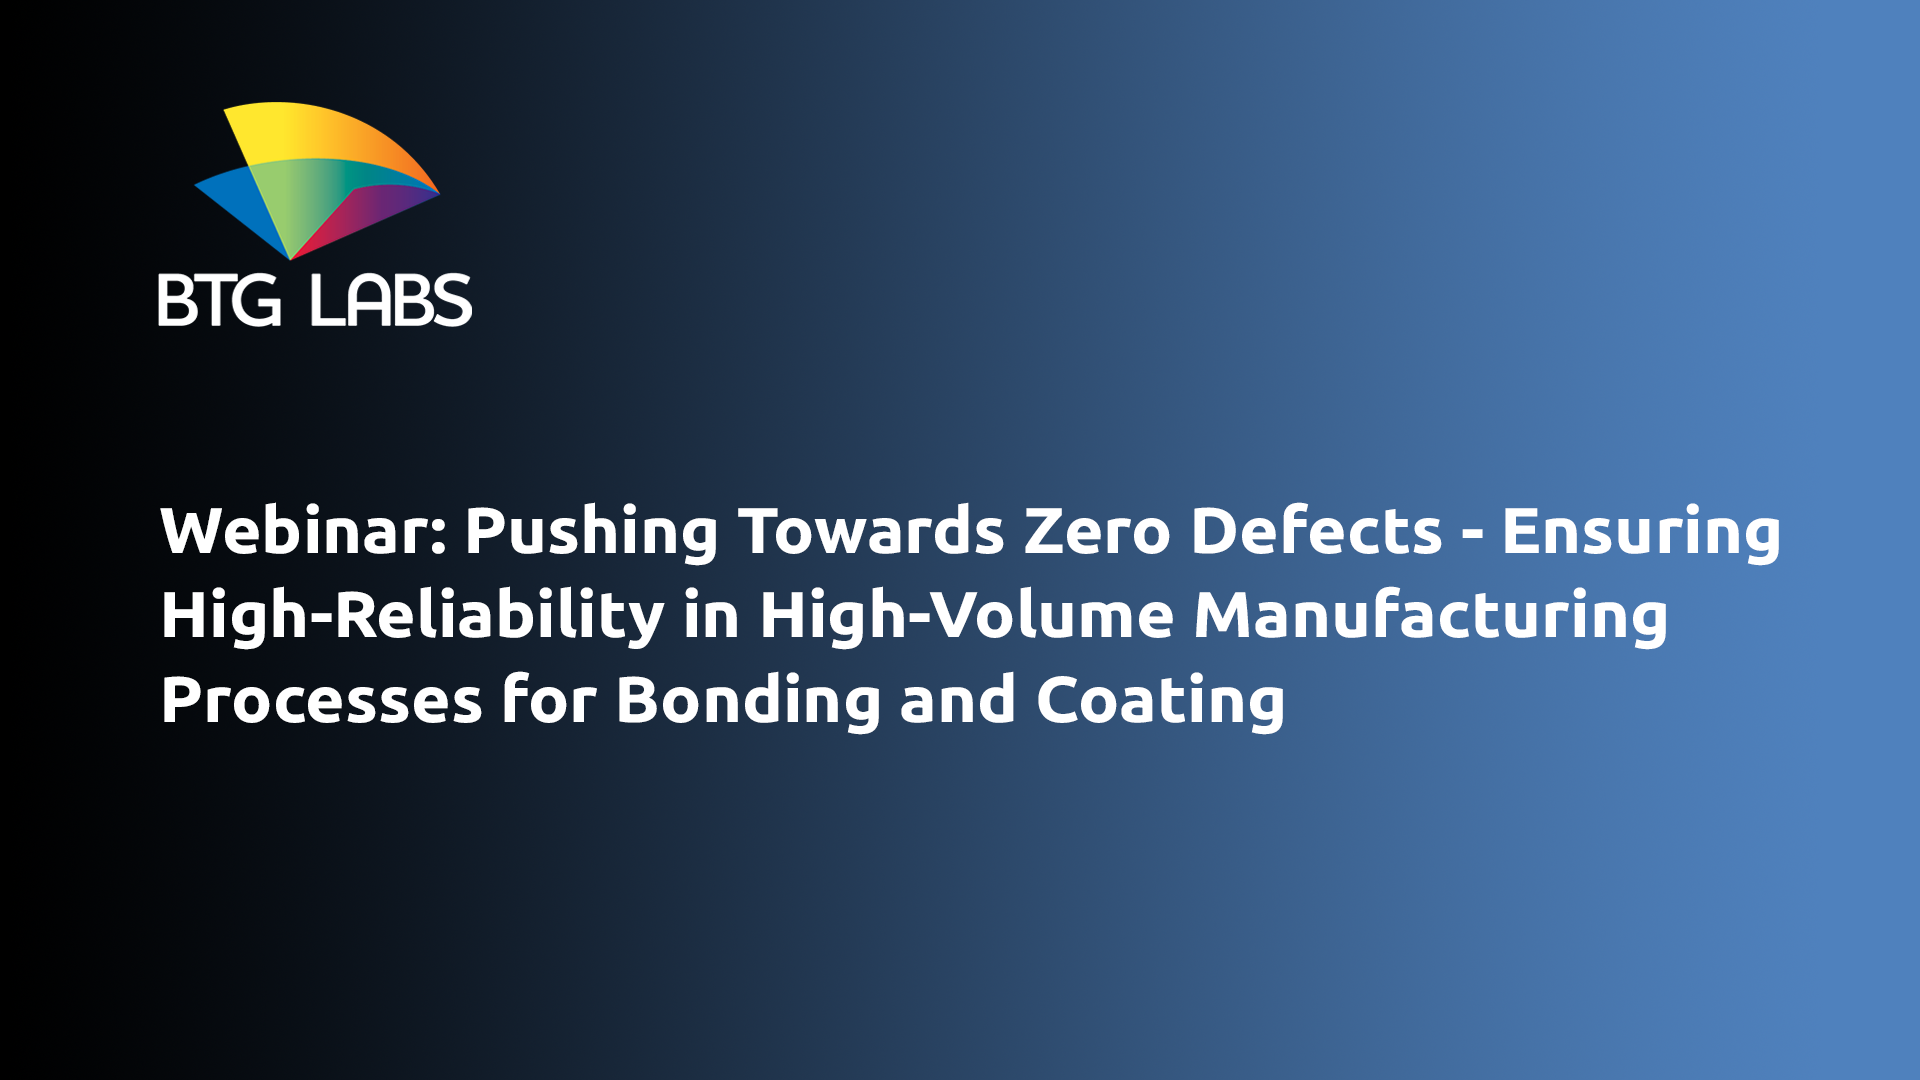 pushing-towards-zero-defects-ensuring-high-reliability-in-high-volume-manufacturing-processes-for-bonding-and-coating-webinar